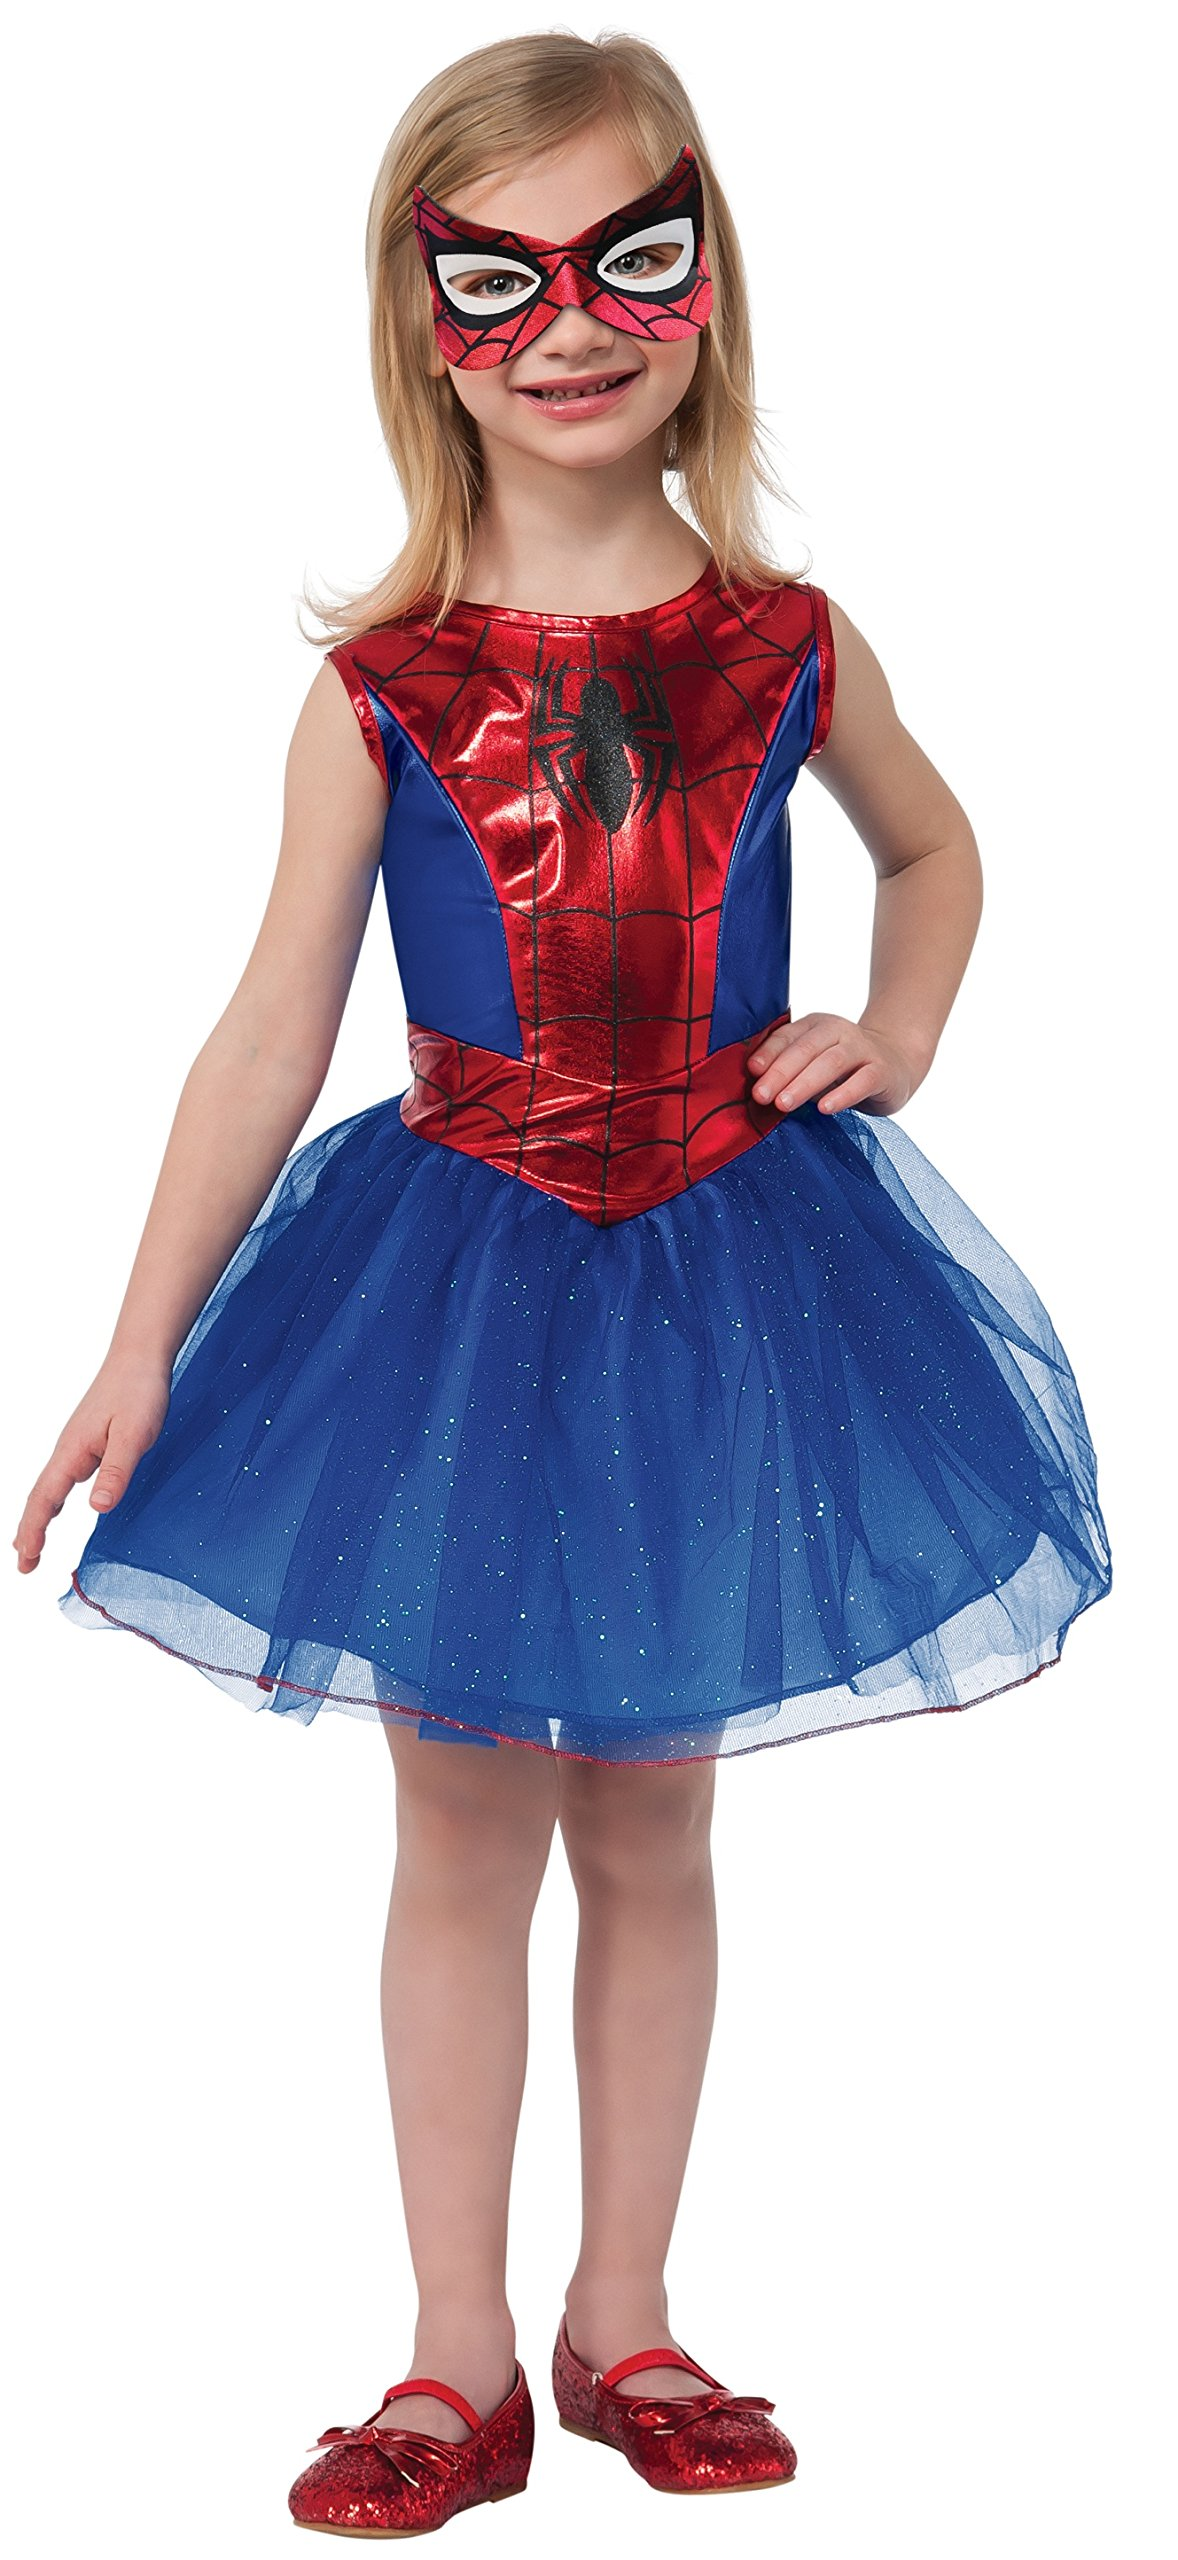 Rubie's Marvel Classic Child's Spider-Girl Costume, Small